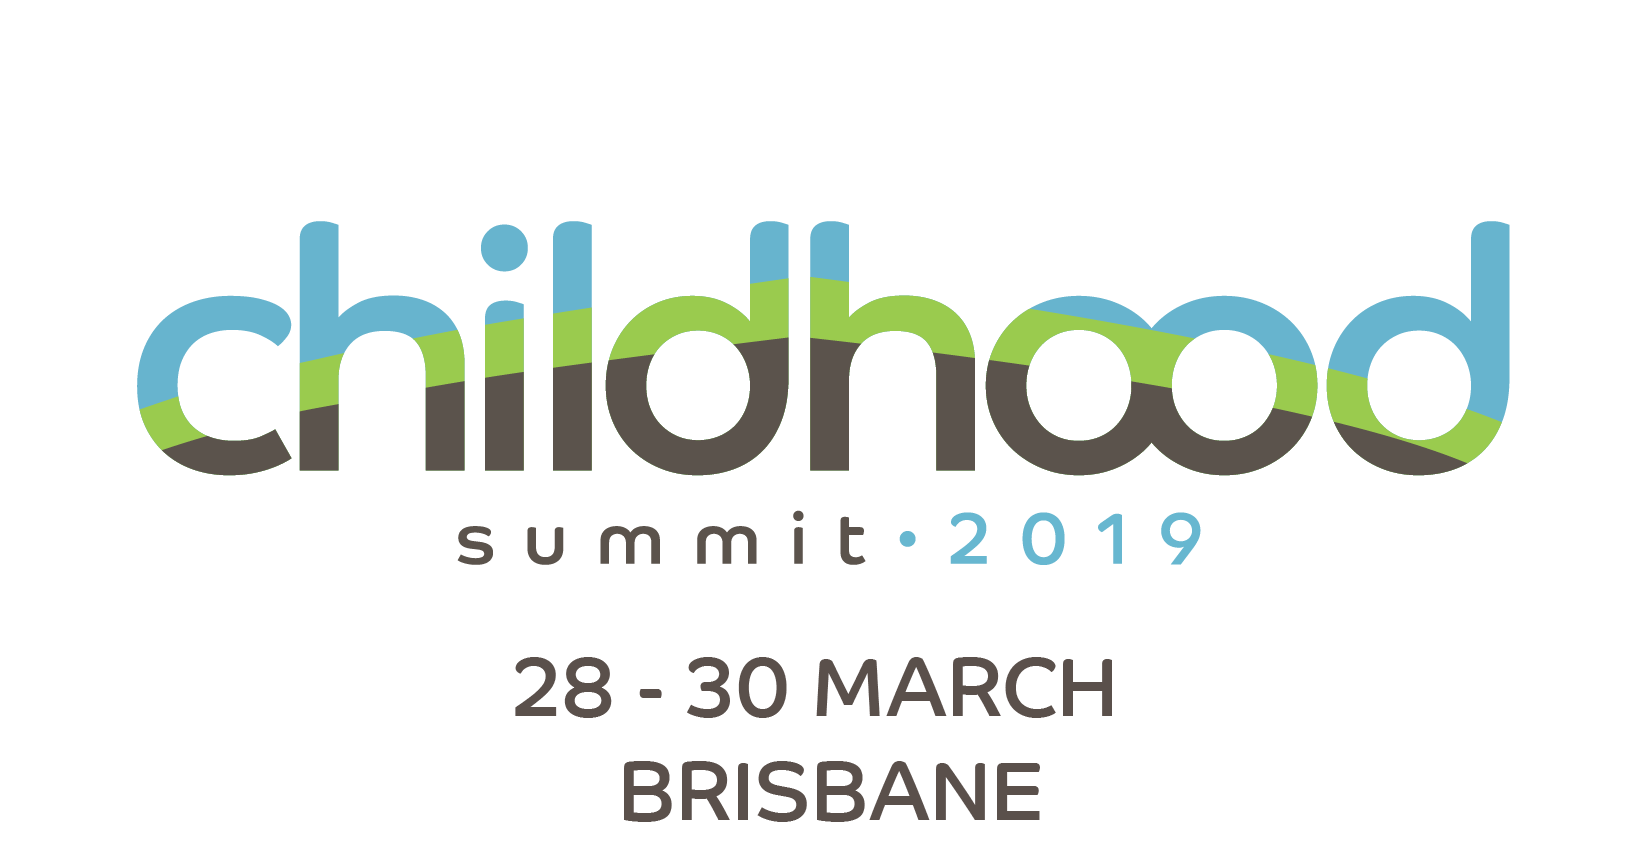 Childhood Summit Logo with details2.png